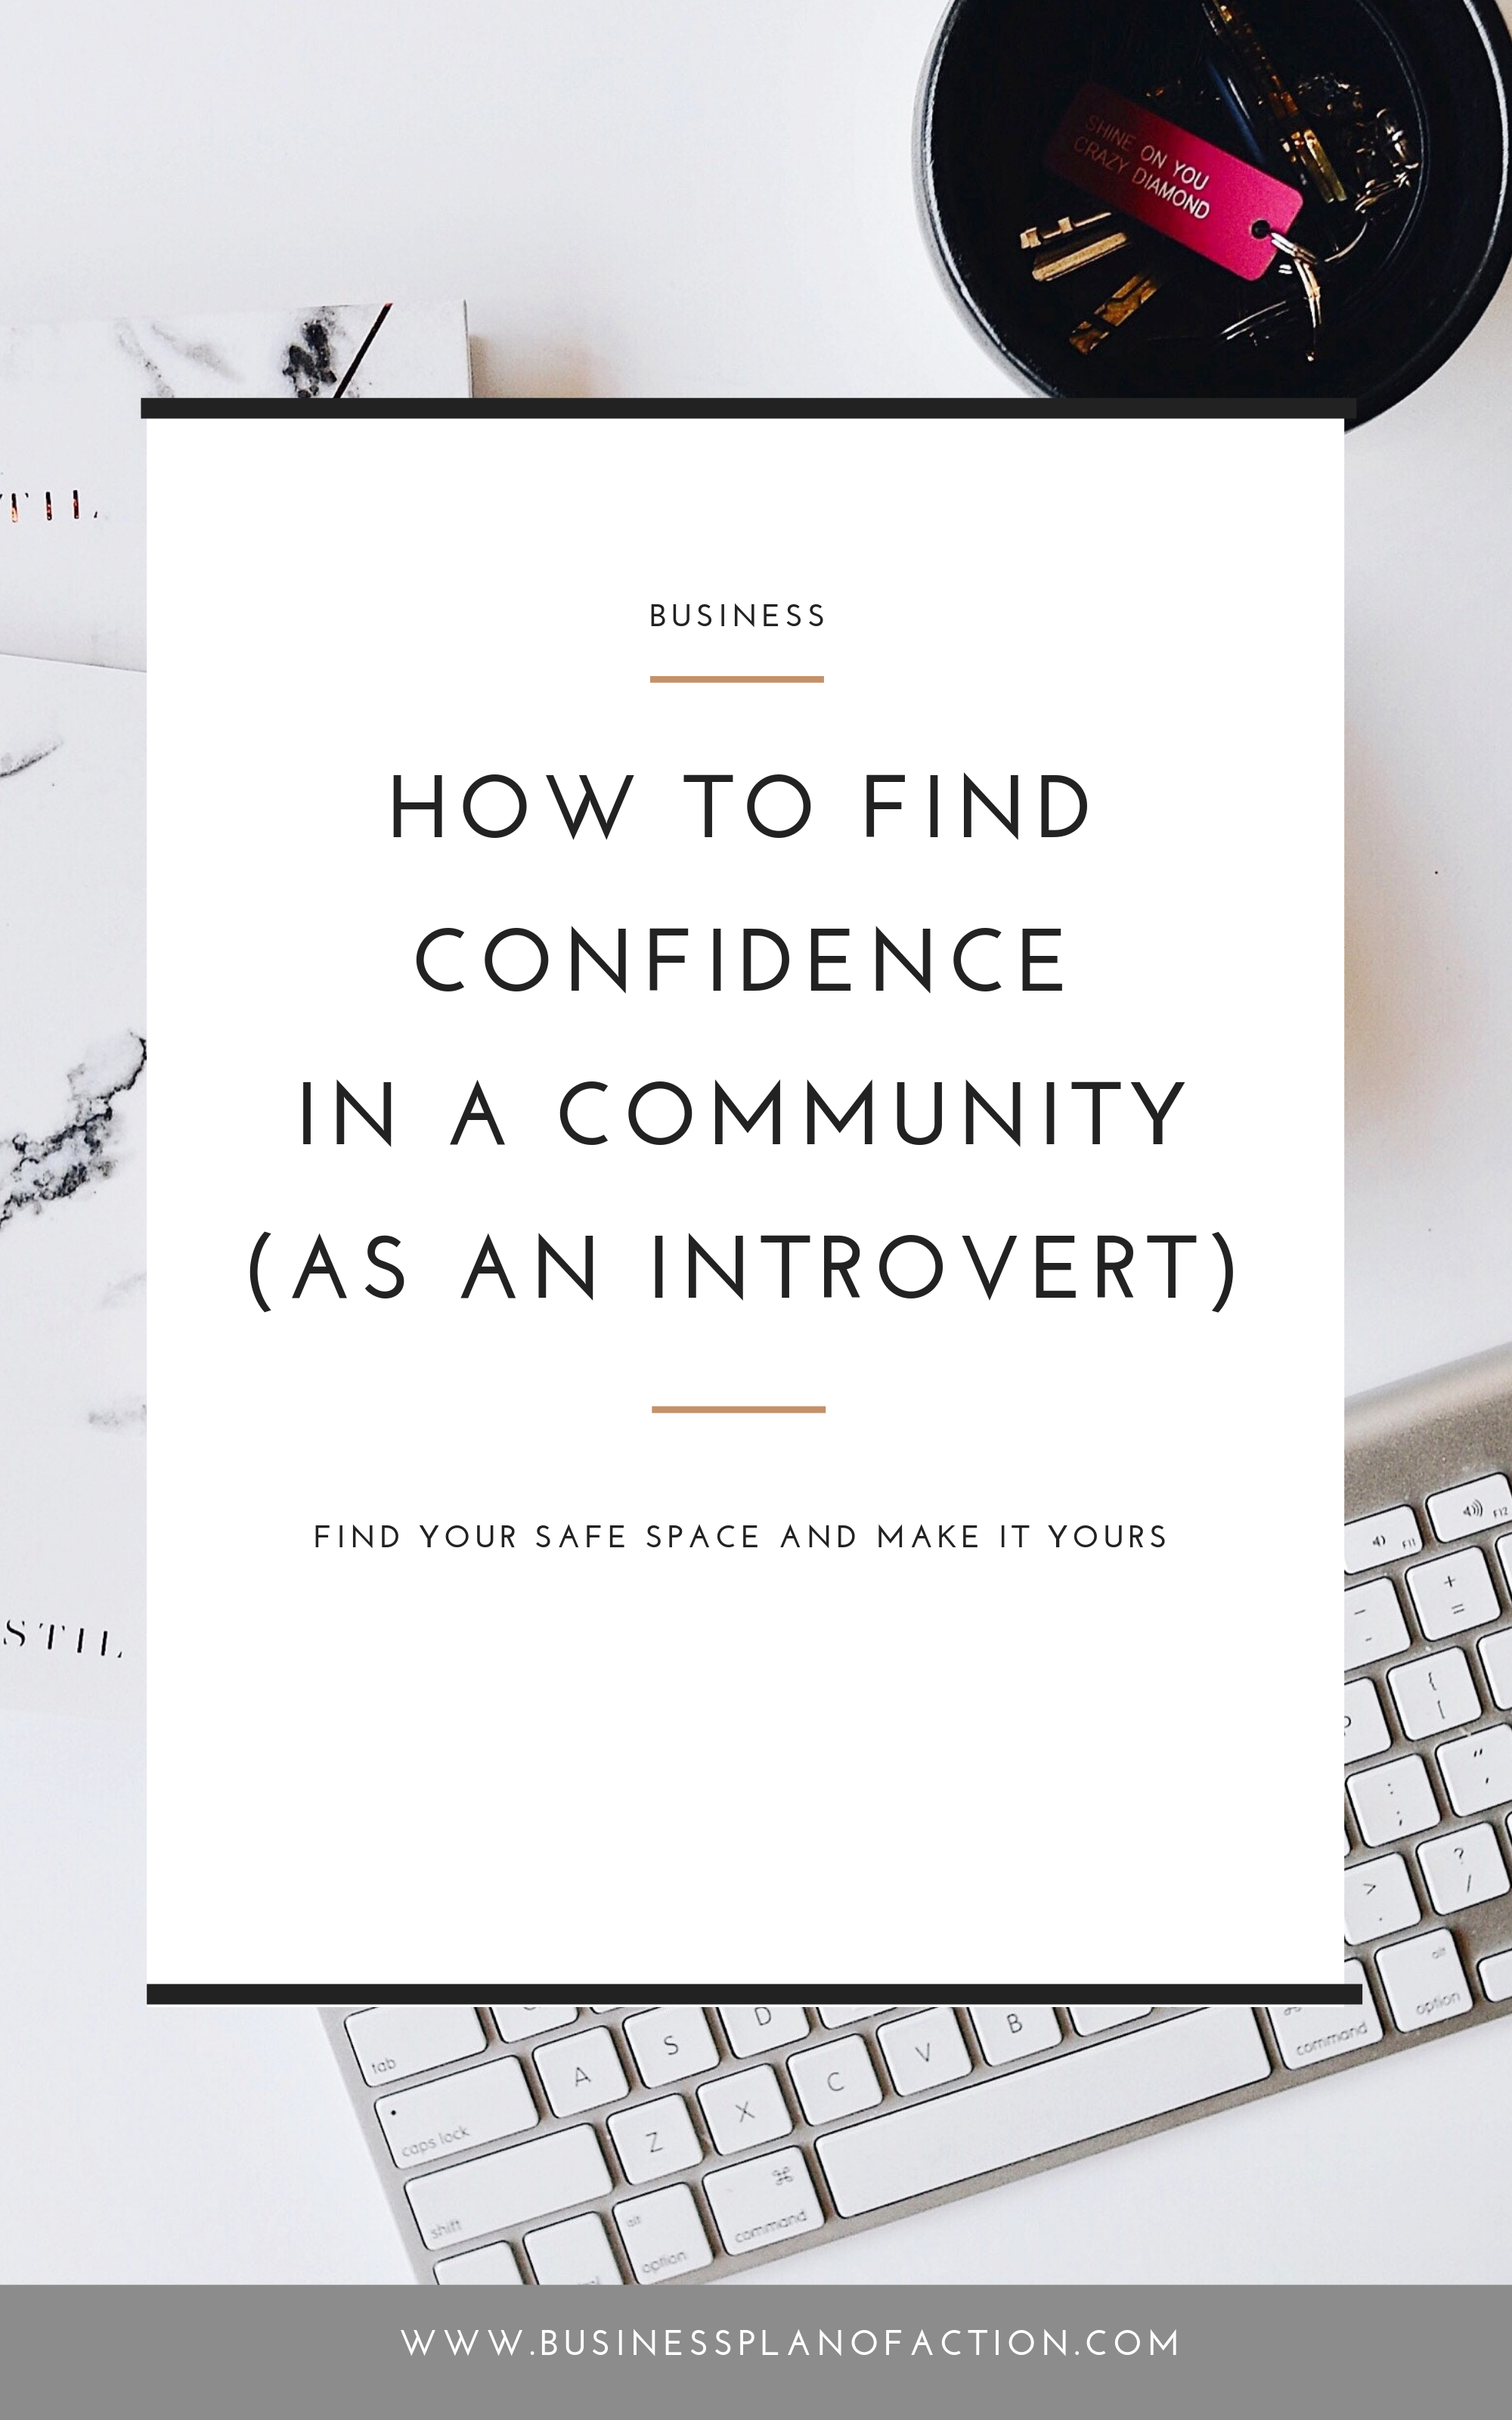 You need to show up in online communities, even if you're an introvert. But it's hard, especially when you'd rather hide behind your computer screen. Learn how to find confidence online and find your tribe.